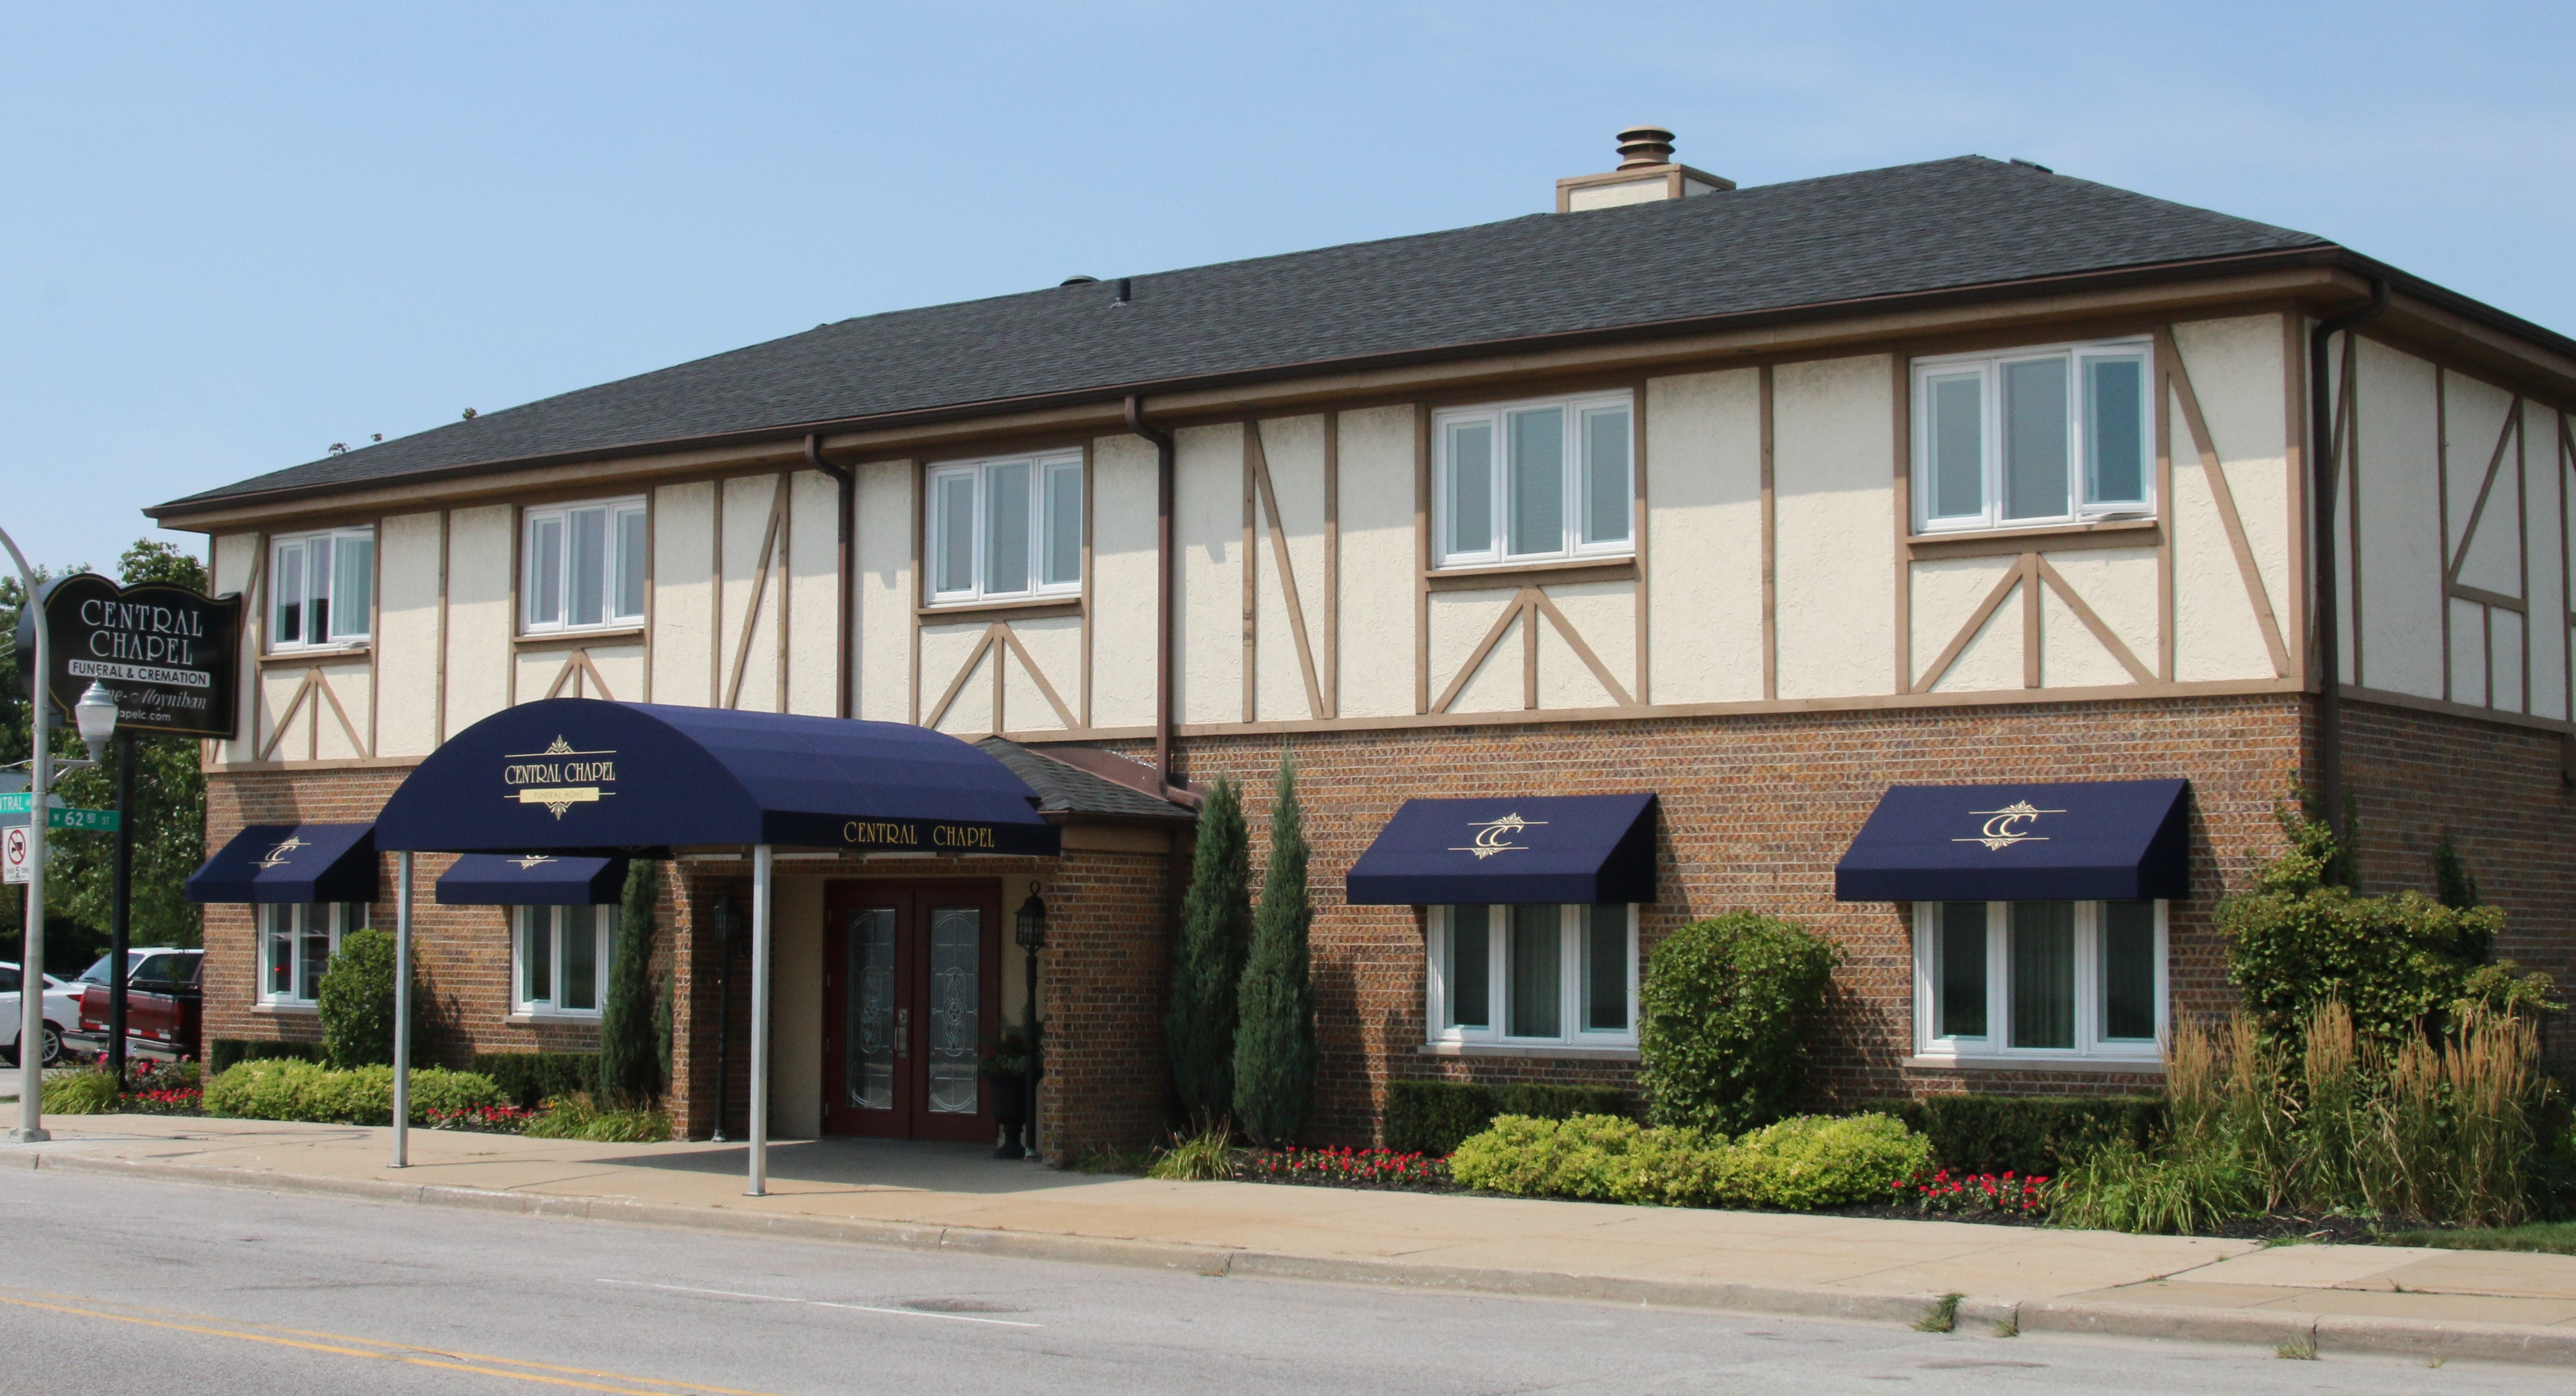 Taylorsville Funeral Homes - Funeral Homes in Taylorsville